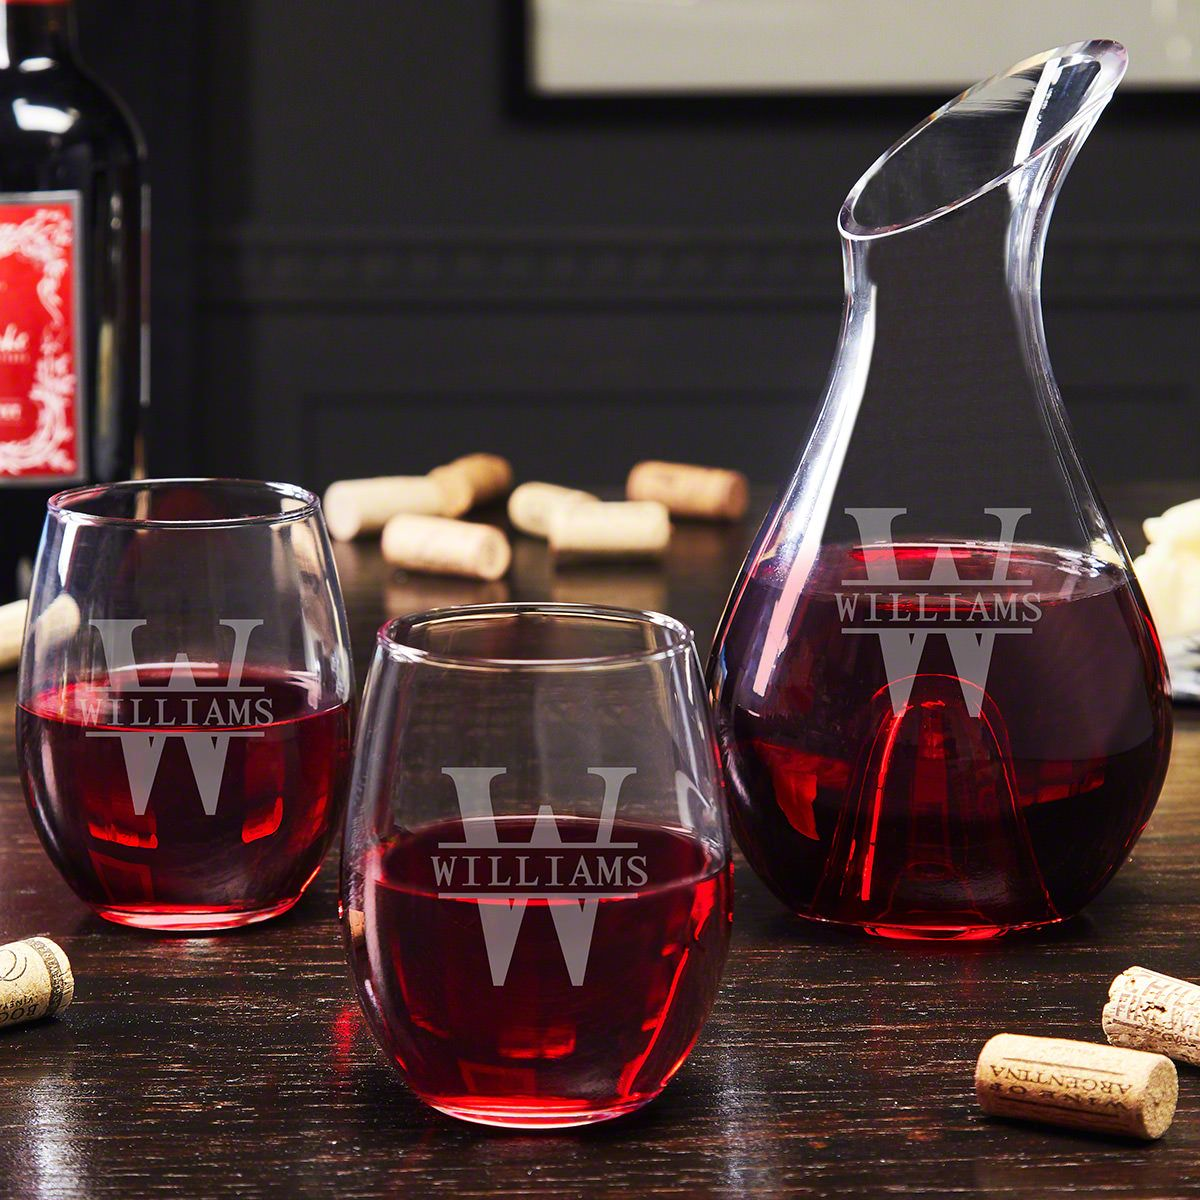 Decanter Wine Glas Oakmont Personalized Wine Decanter And Glasses Gift For Wine Lovers